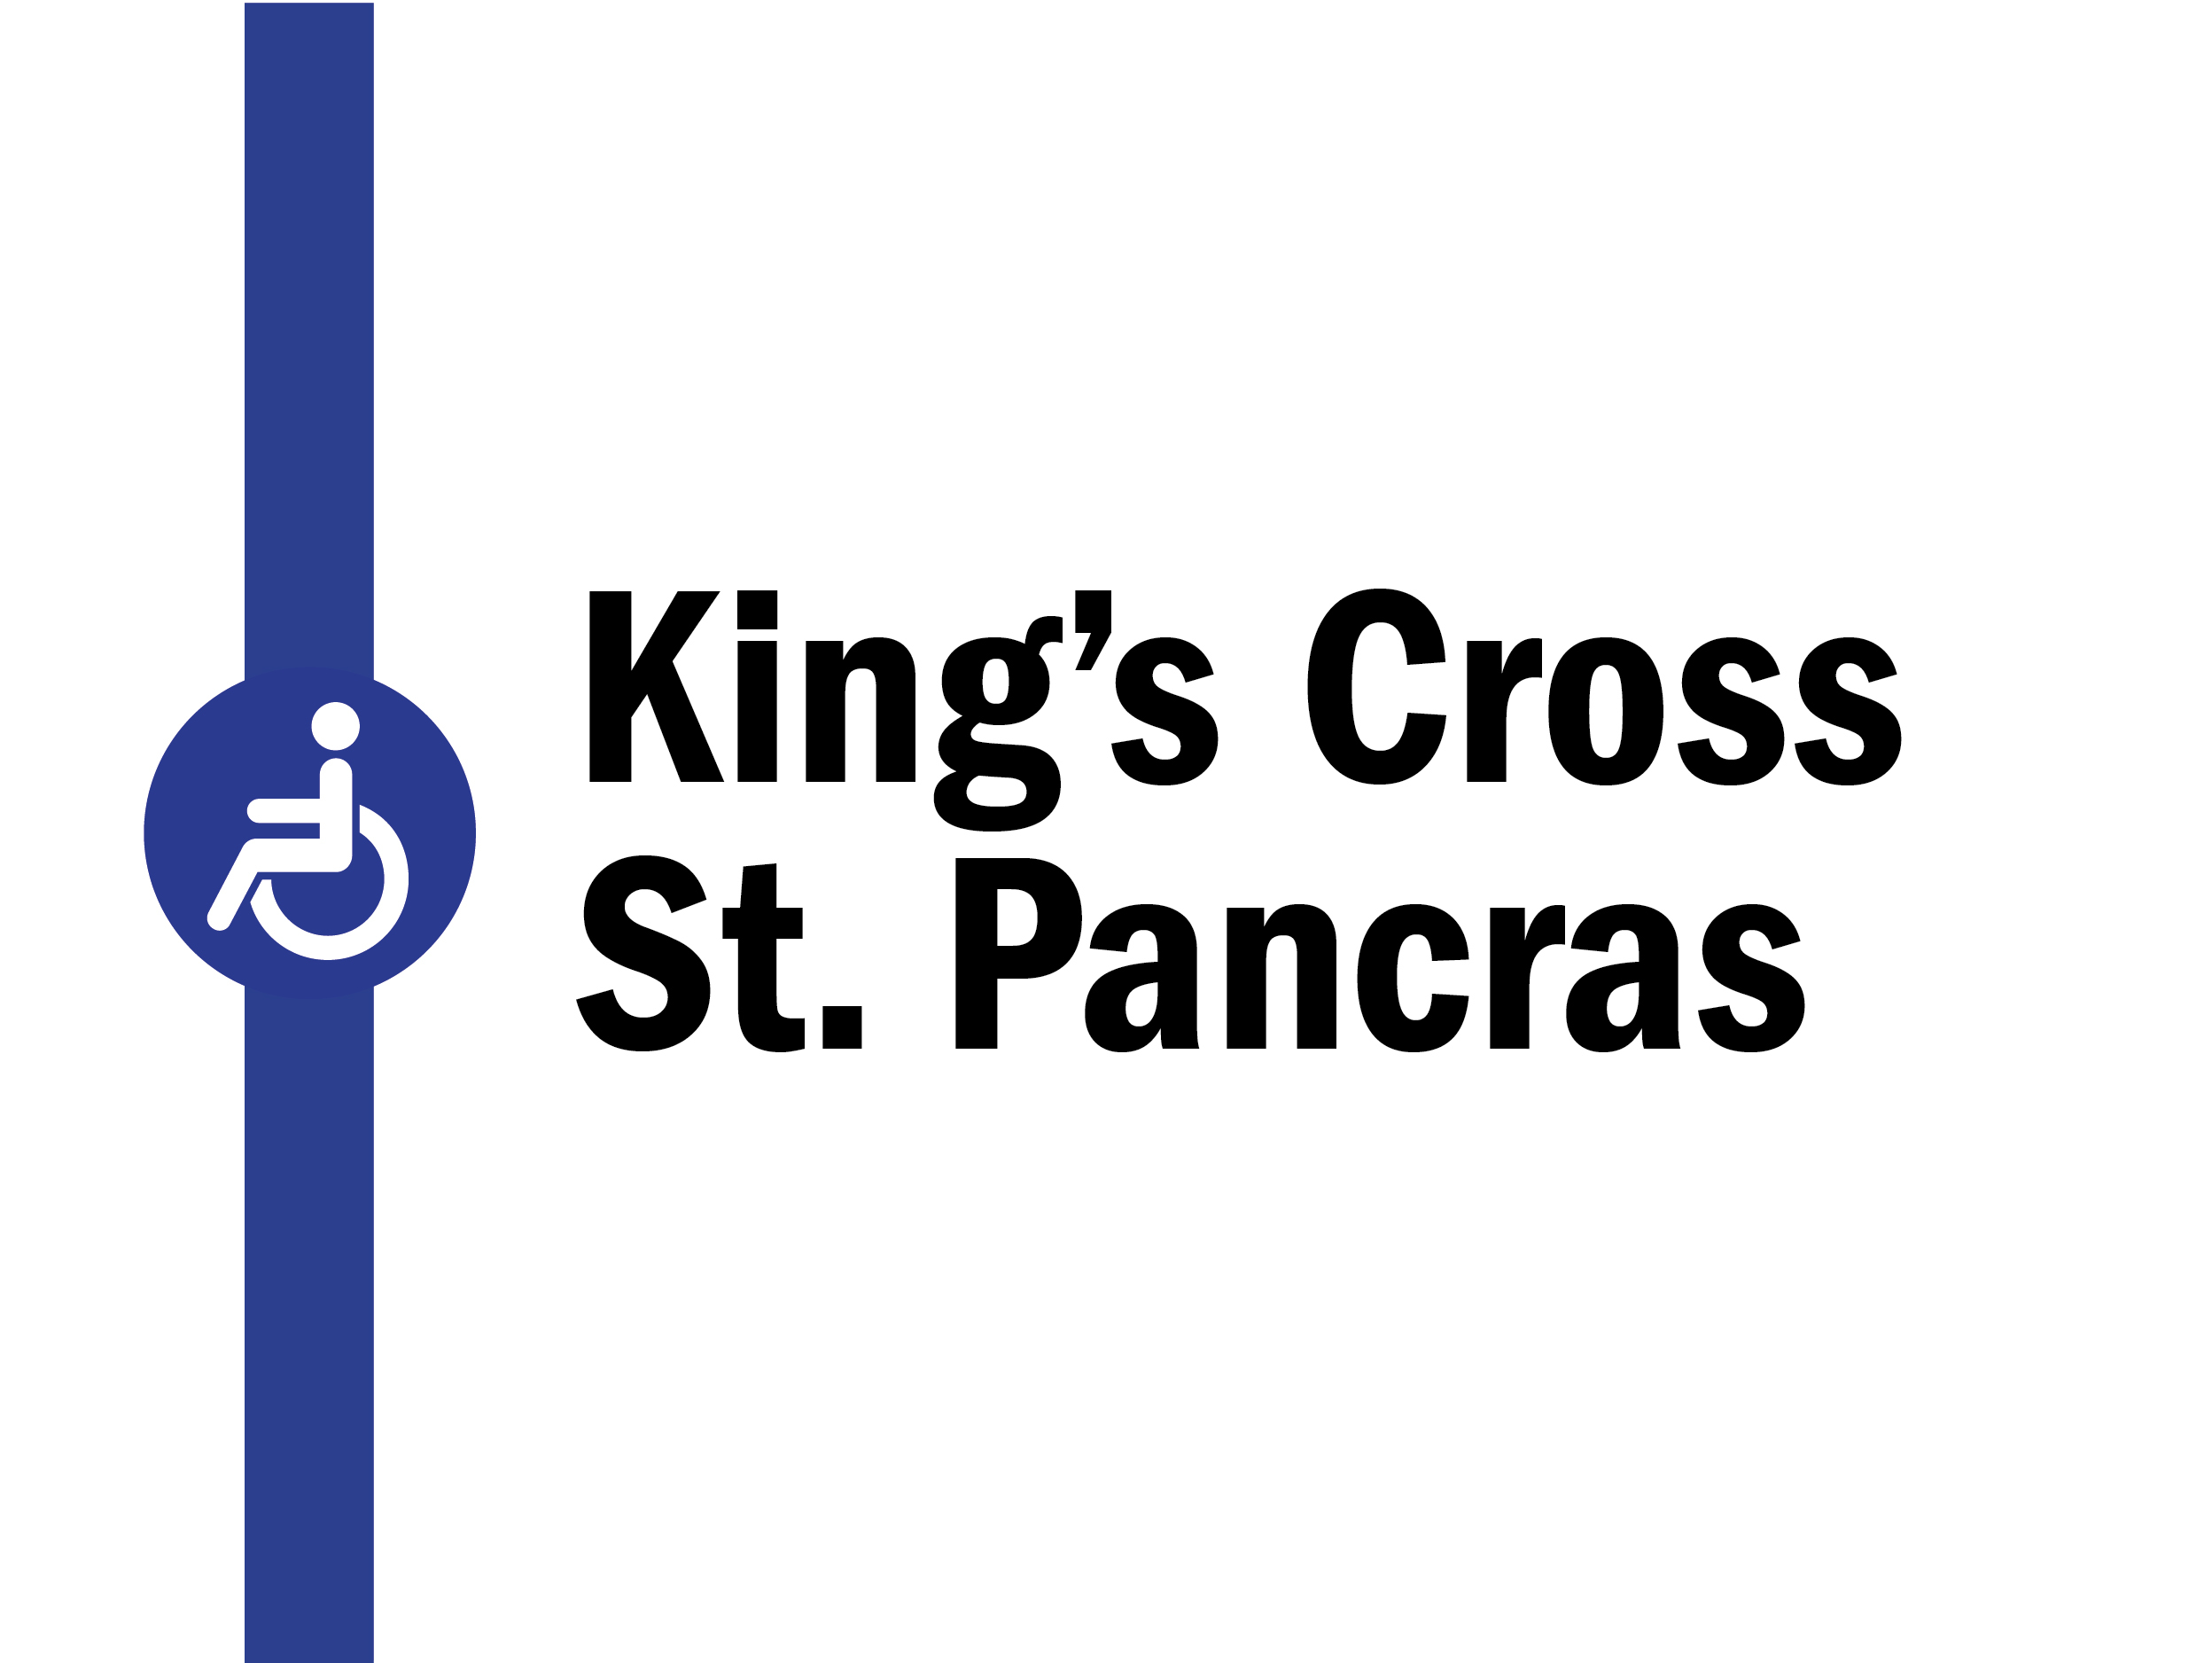 King's Cross St Pancras, Piccadilly Line